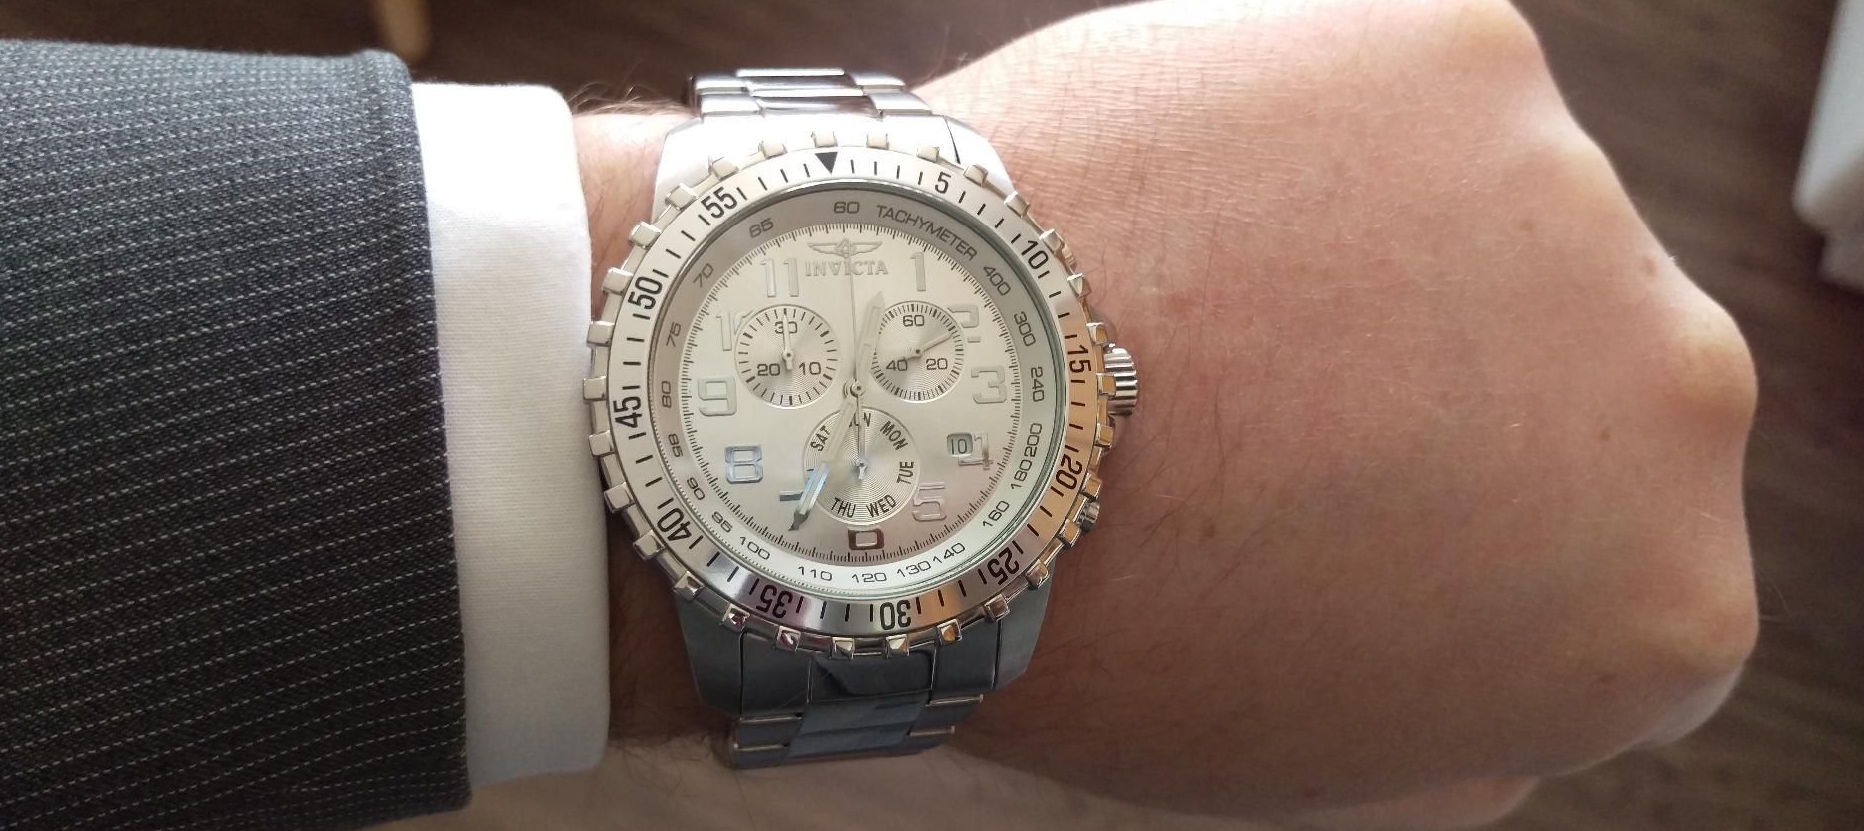 Invicta Men's 6620 II Collection Chronograph Watch Review